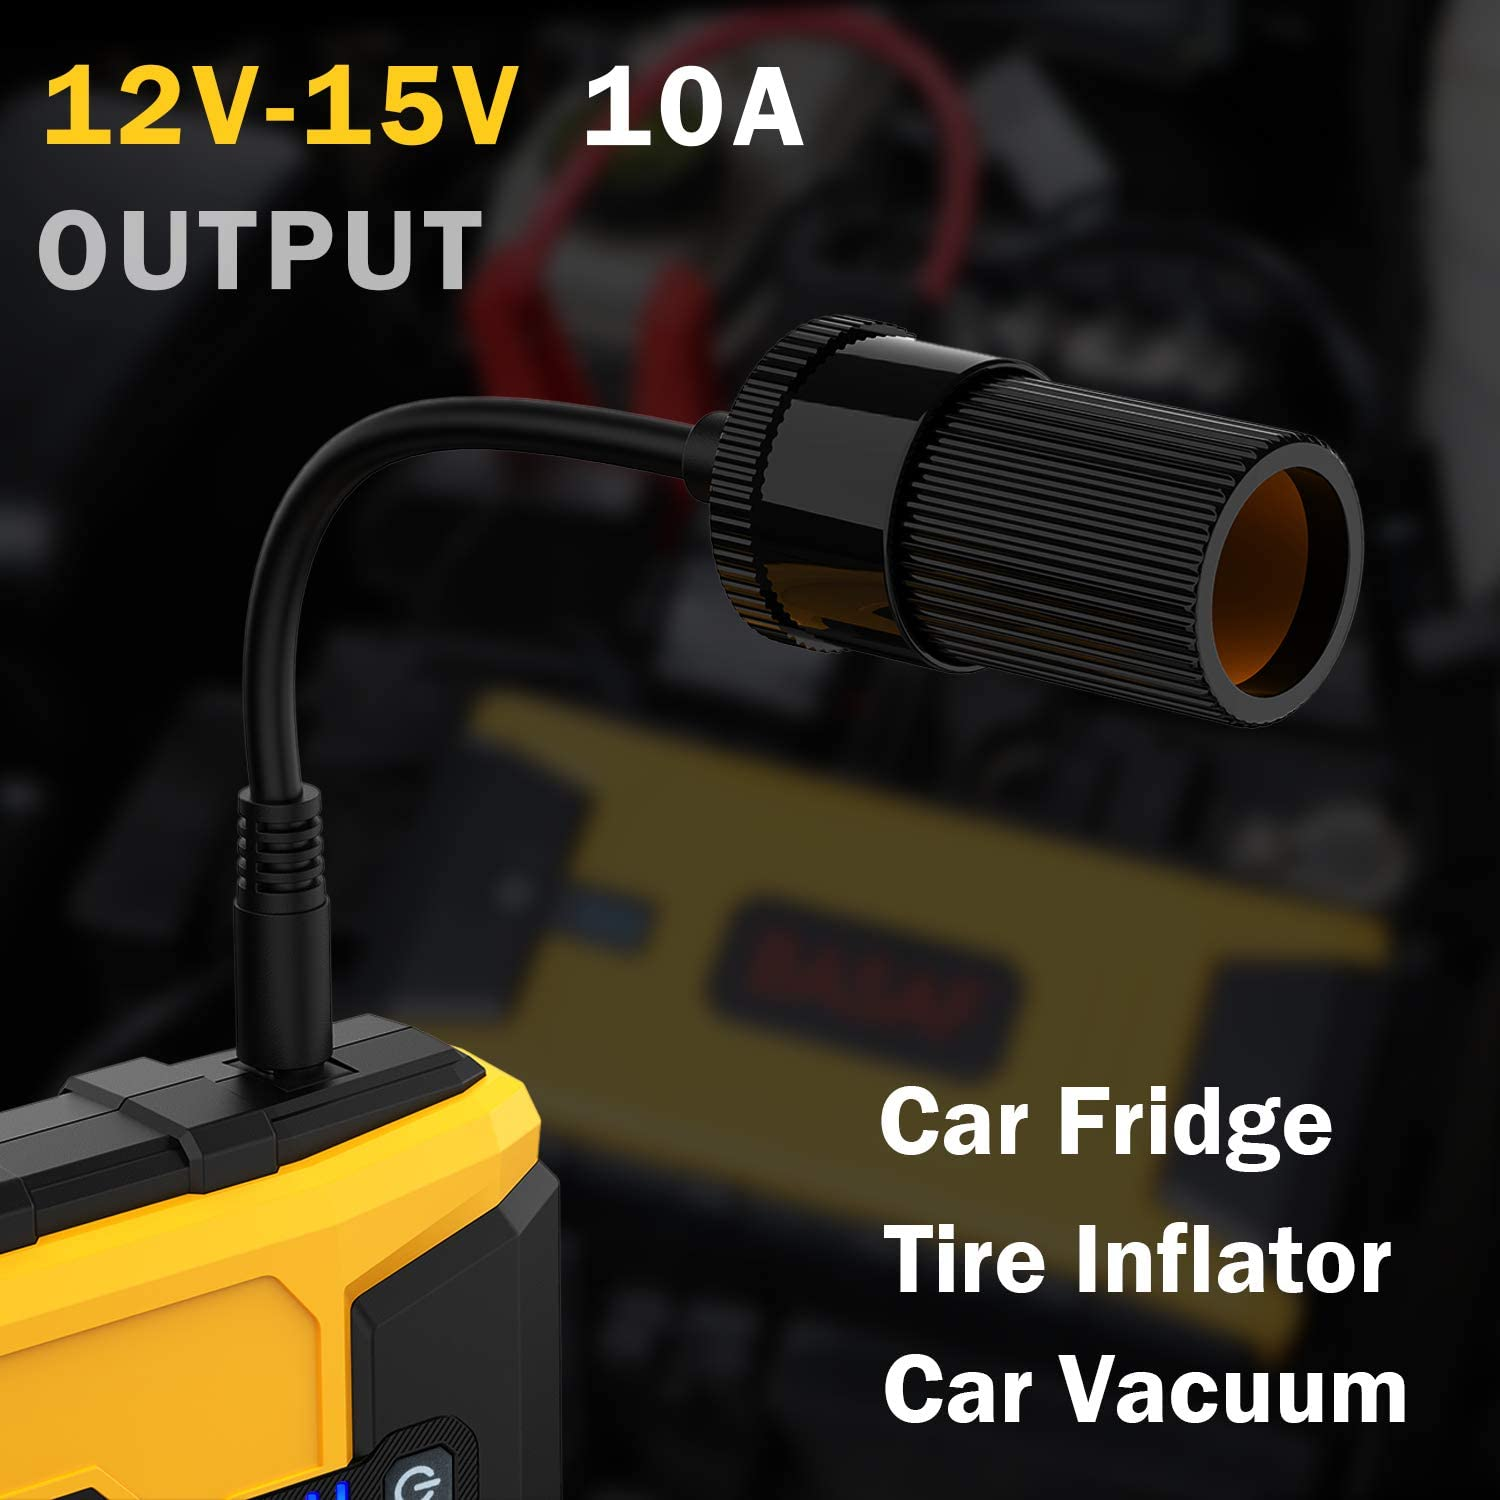 Car Jump Starter 1200A Peak 16800mAh for up to 8L Gas and 6L Diesel Engines Type-C in//out Port USB Quick Charge 3.0 12V Car Portable Battery Booster